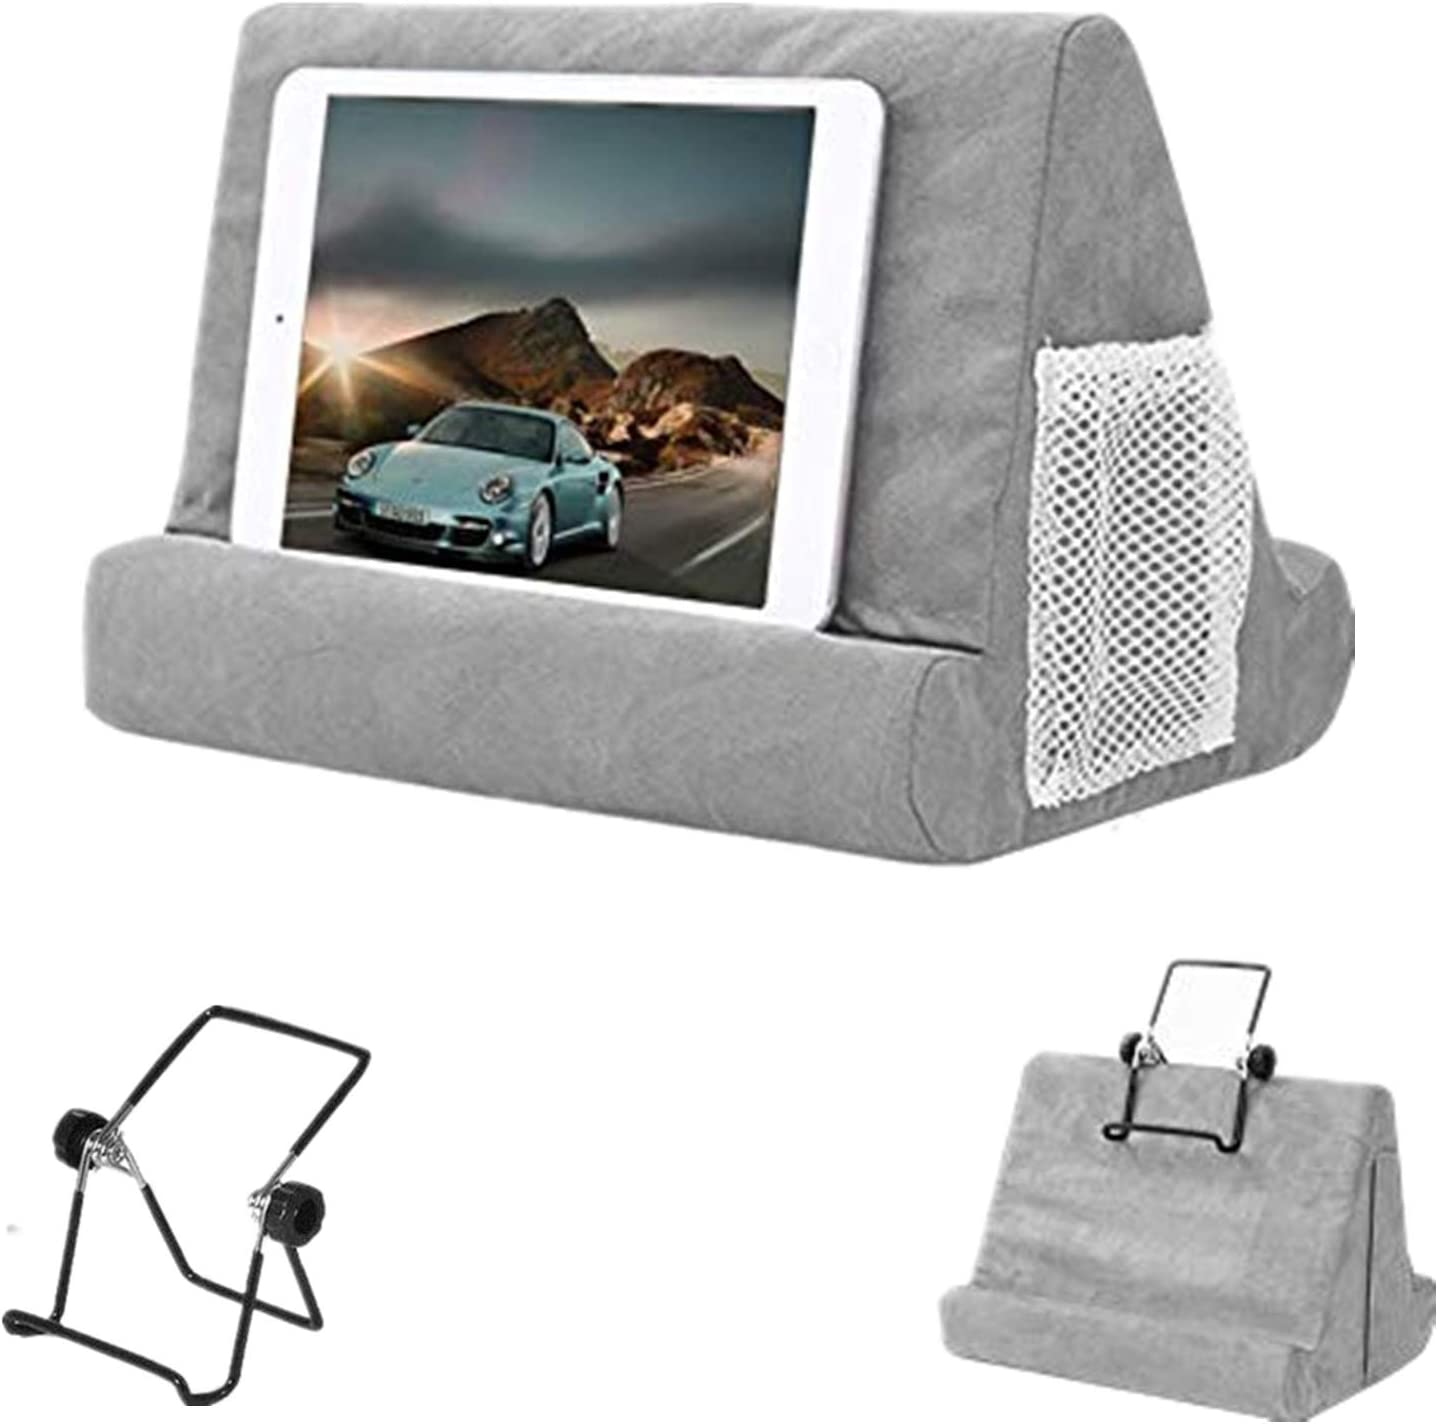 Tablet Soft Pillow Stand for iPads Multi-Angle Lap Stand Mobile Phone Holder for iPad, eReaders, Smartphones, Books, Magazines